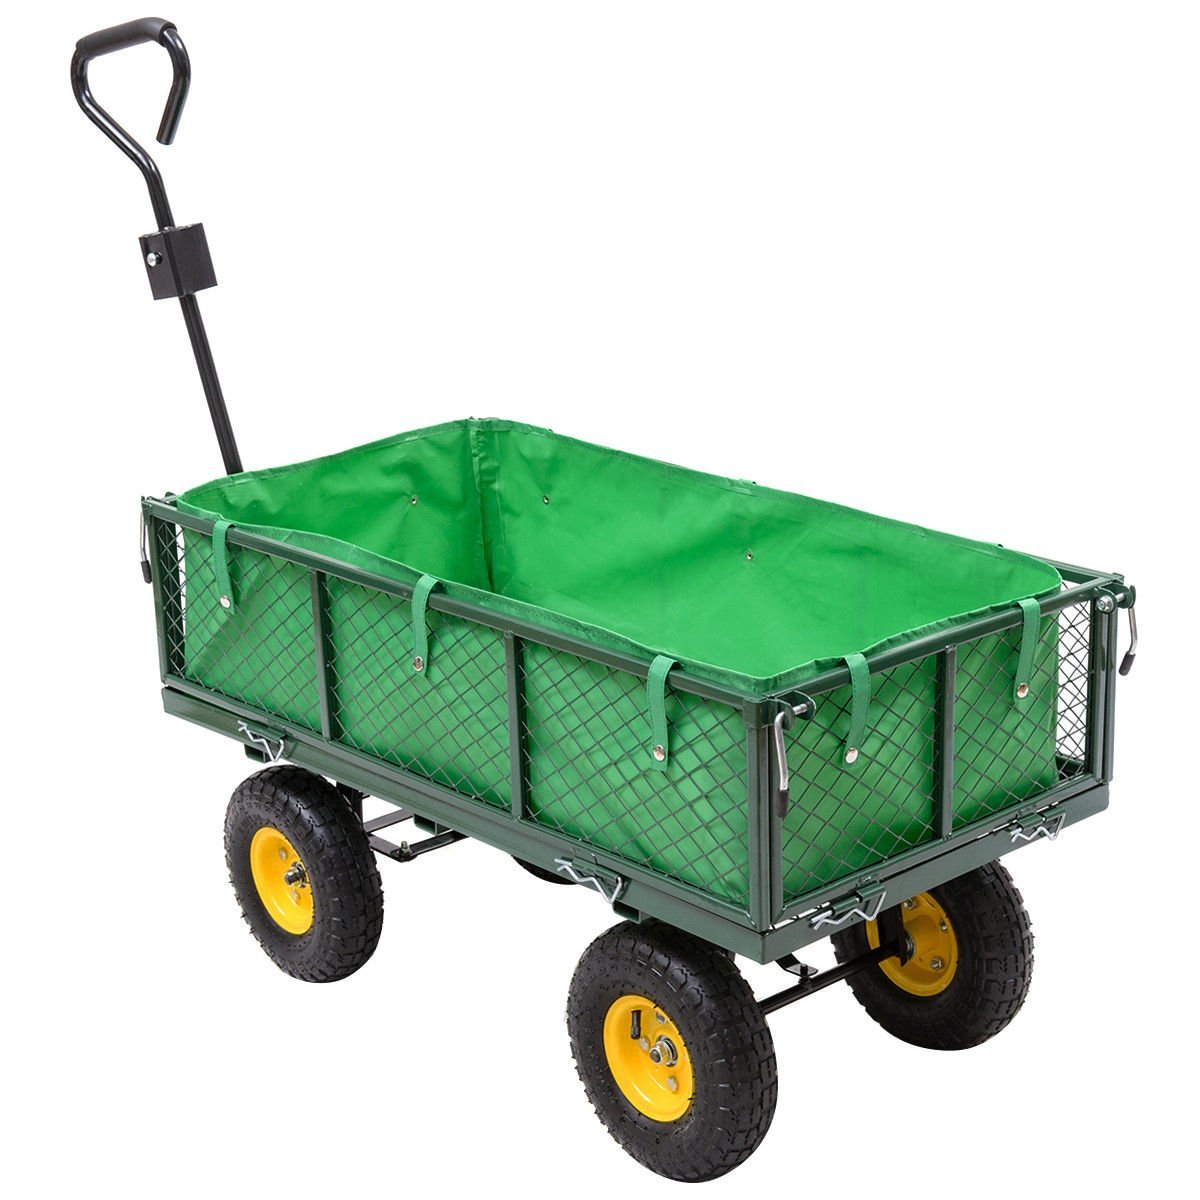 Globe House Products GHP 800-Lbs Capacity Steel Mesh Crate Oxford Cloth Garden Trolley Cart w Rubber Tires